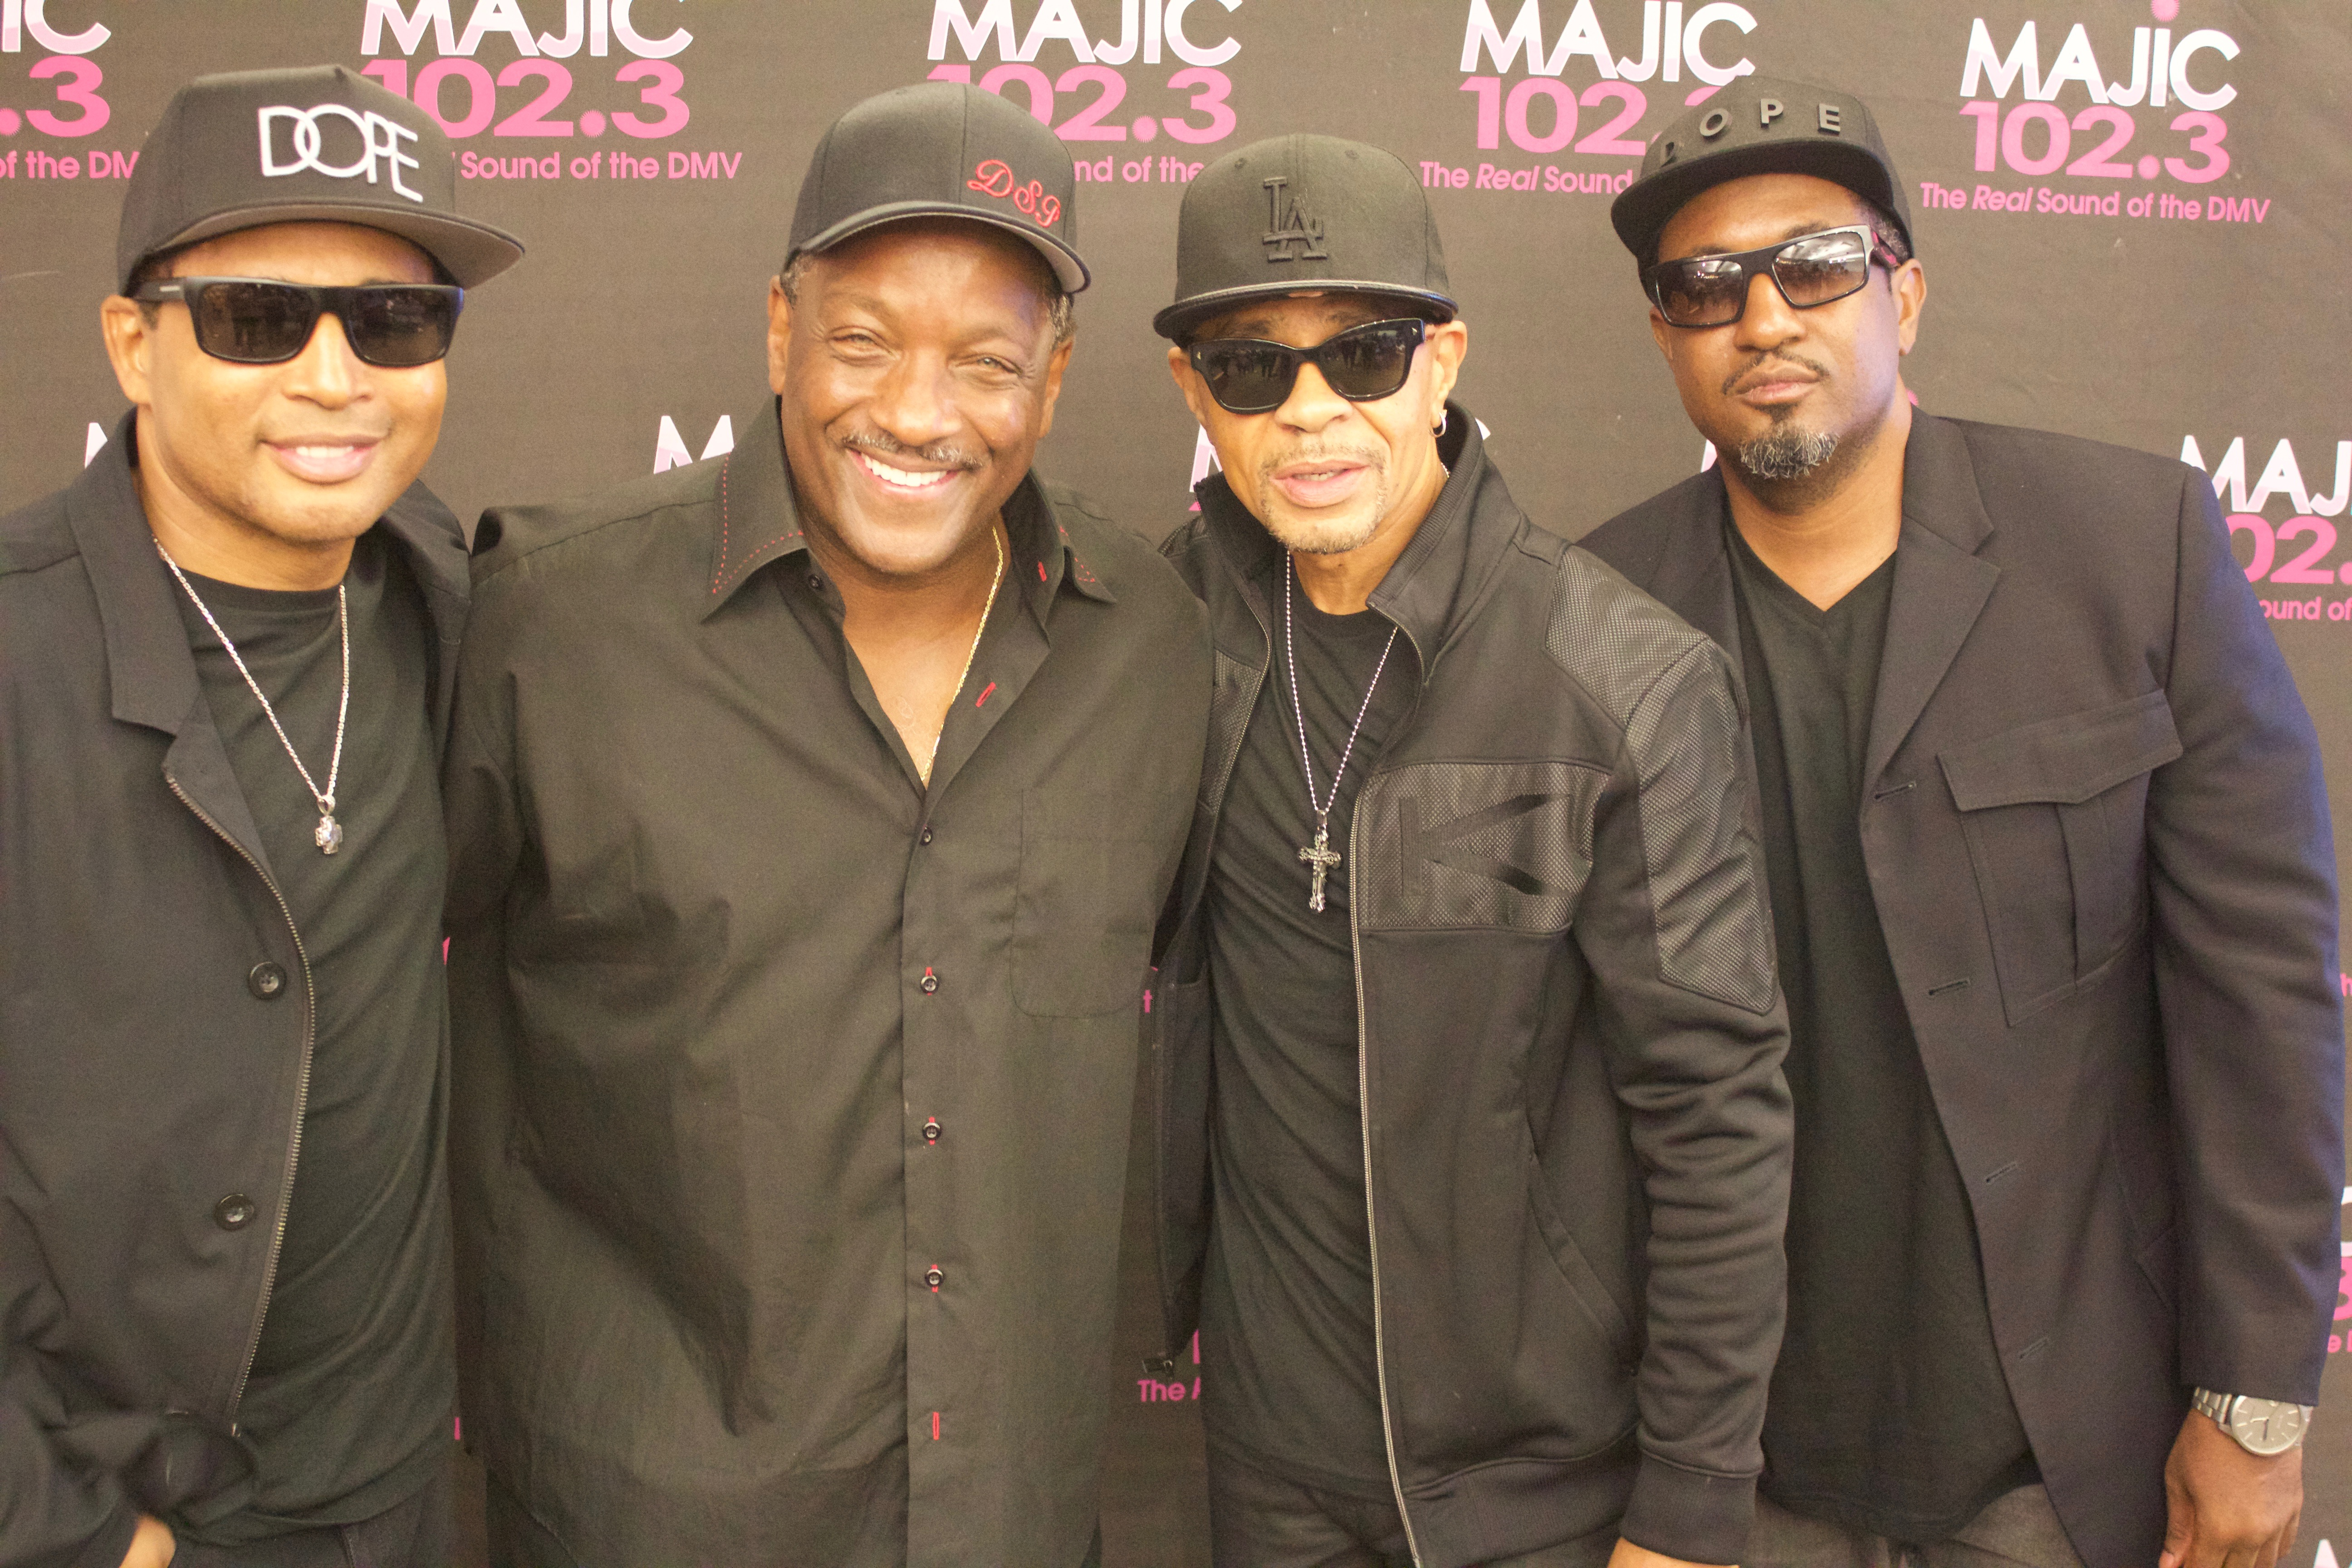 Behind The Majic With Donnie Simpson U0026 After 7 [Presented By Boost Mobile]